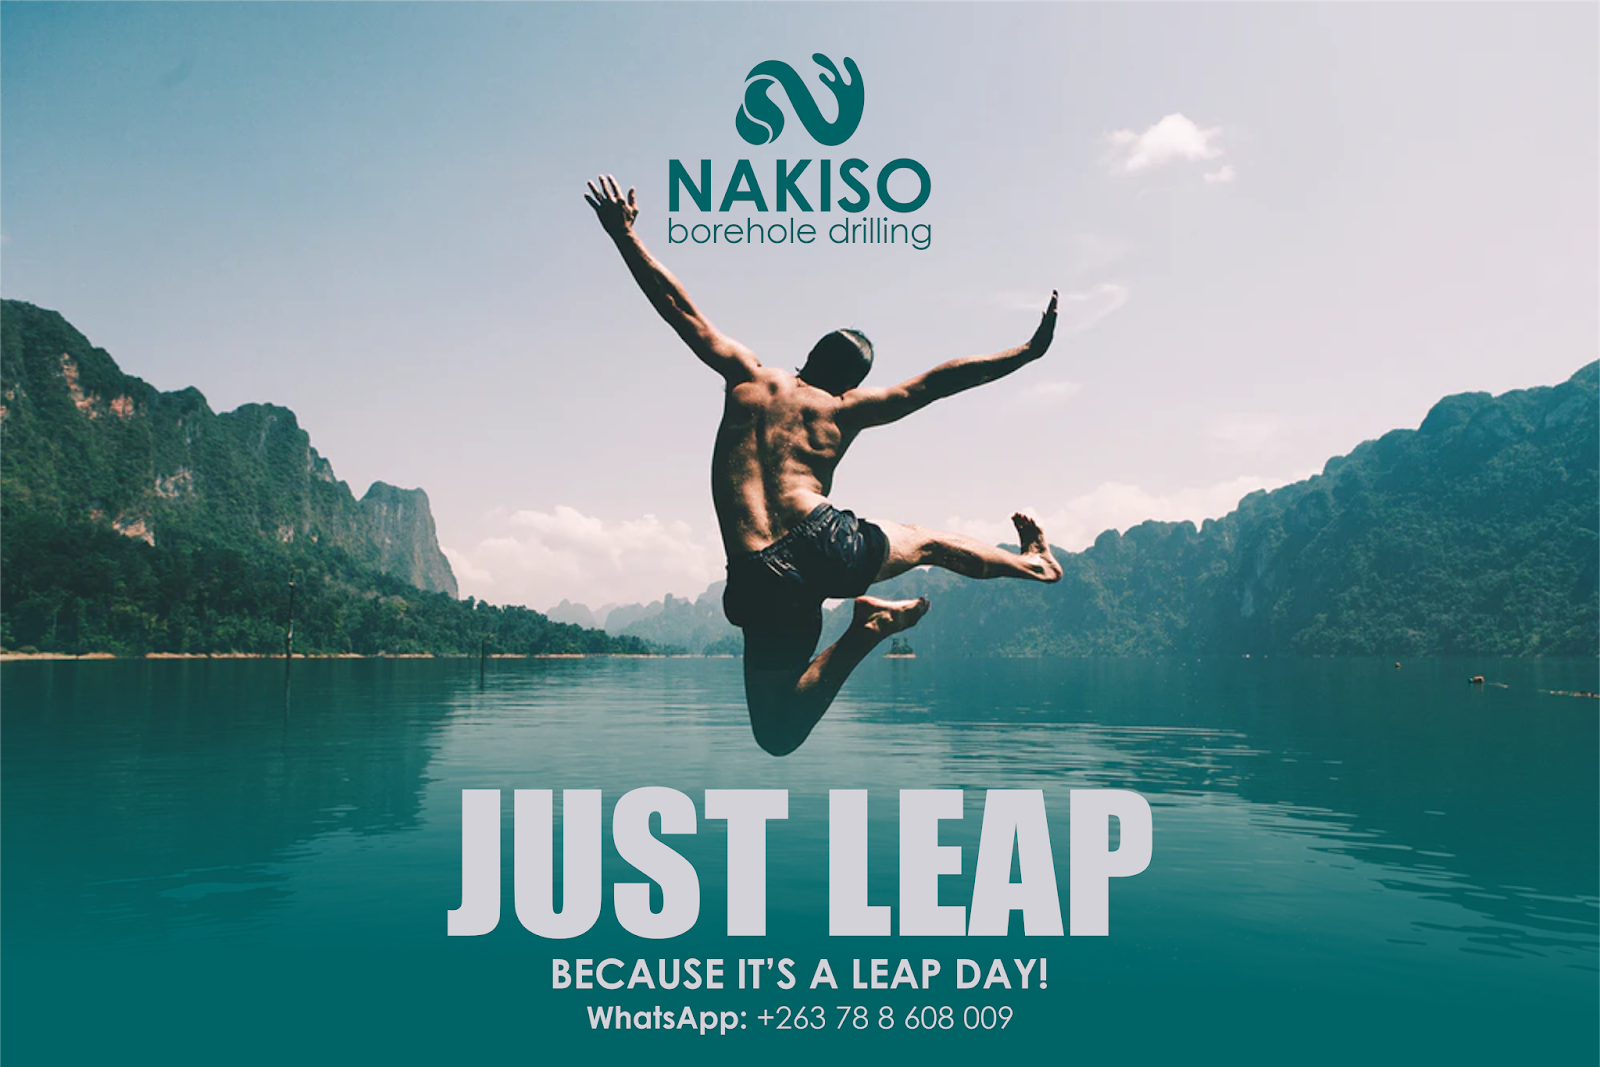 #LeapToWin - Things To Know About February's Leap To Win Day with Nakiso Borehole Drilling